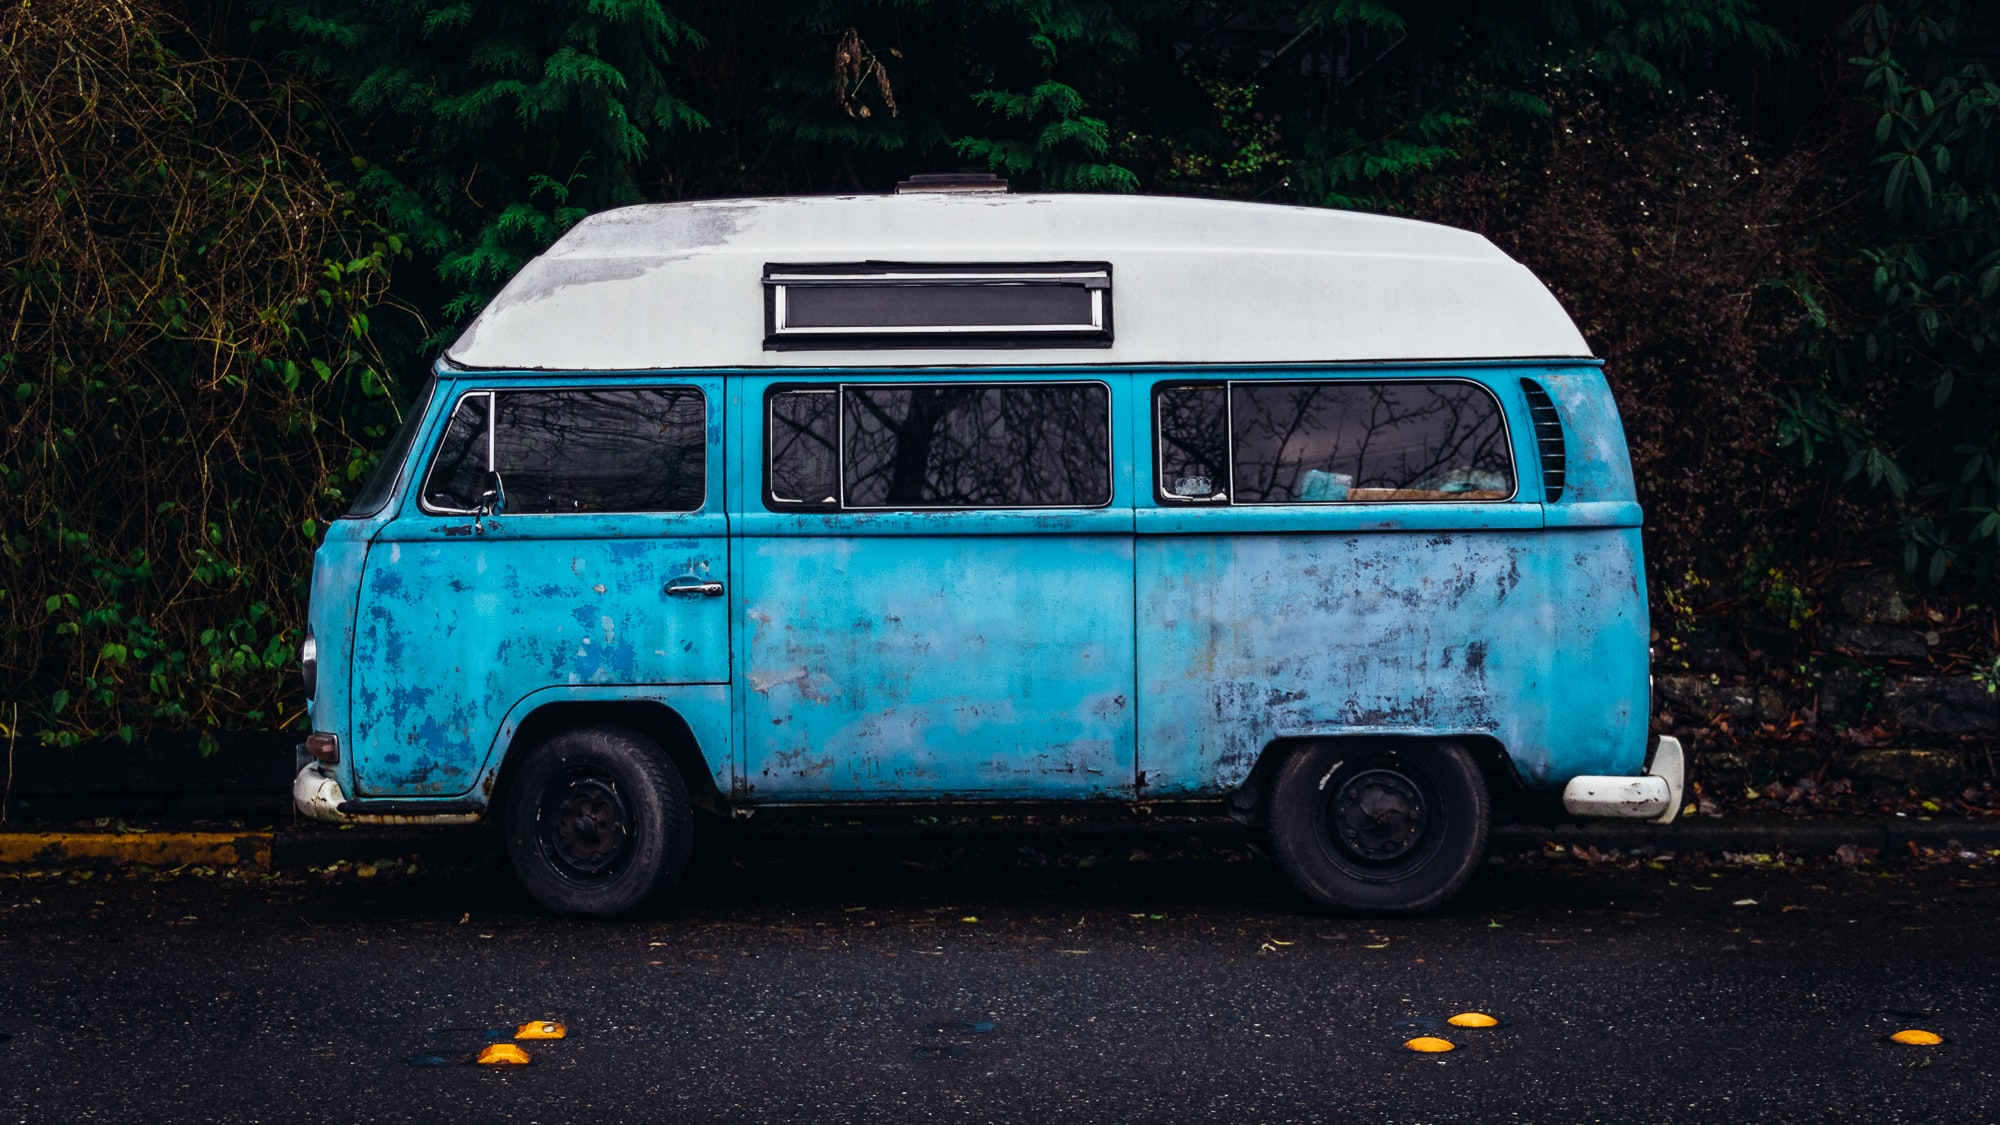 An old blue camper van with a white top parked on the side of the road